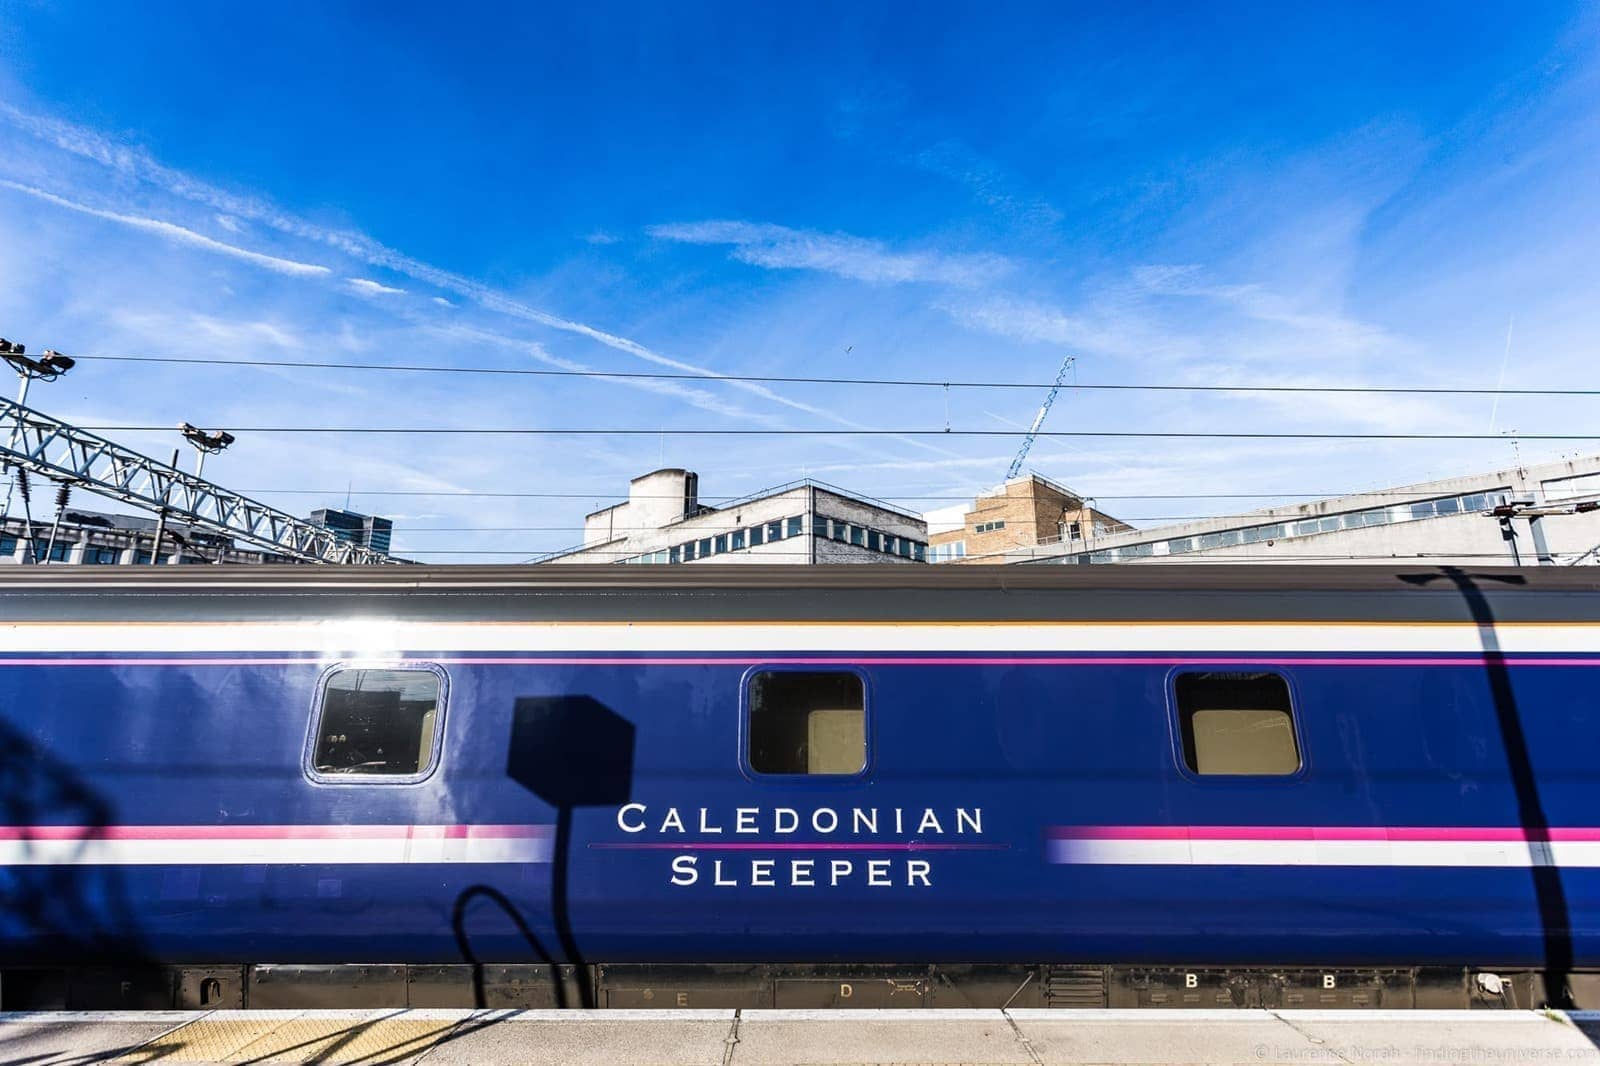 Using the Caledonian Sleeper Train to Travel in the UK - Finding the